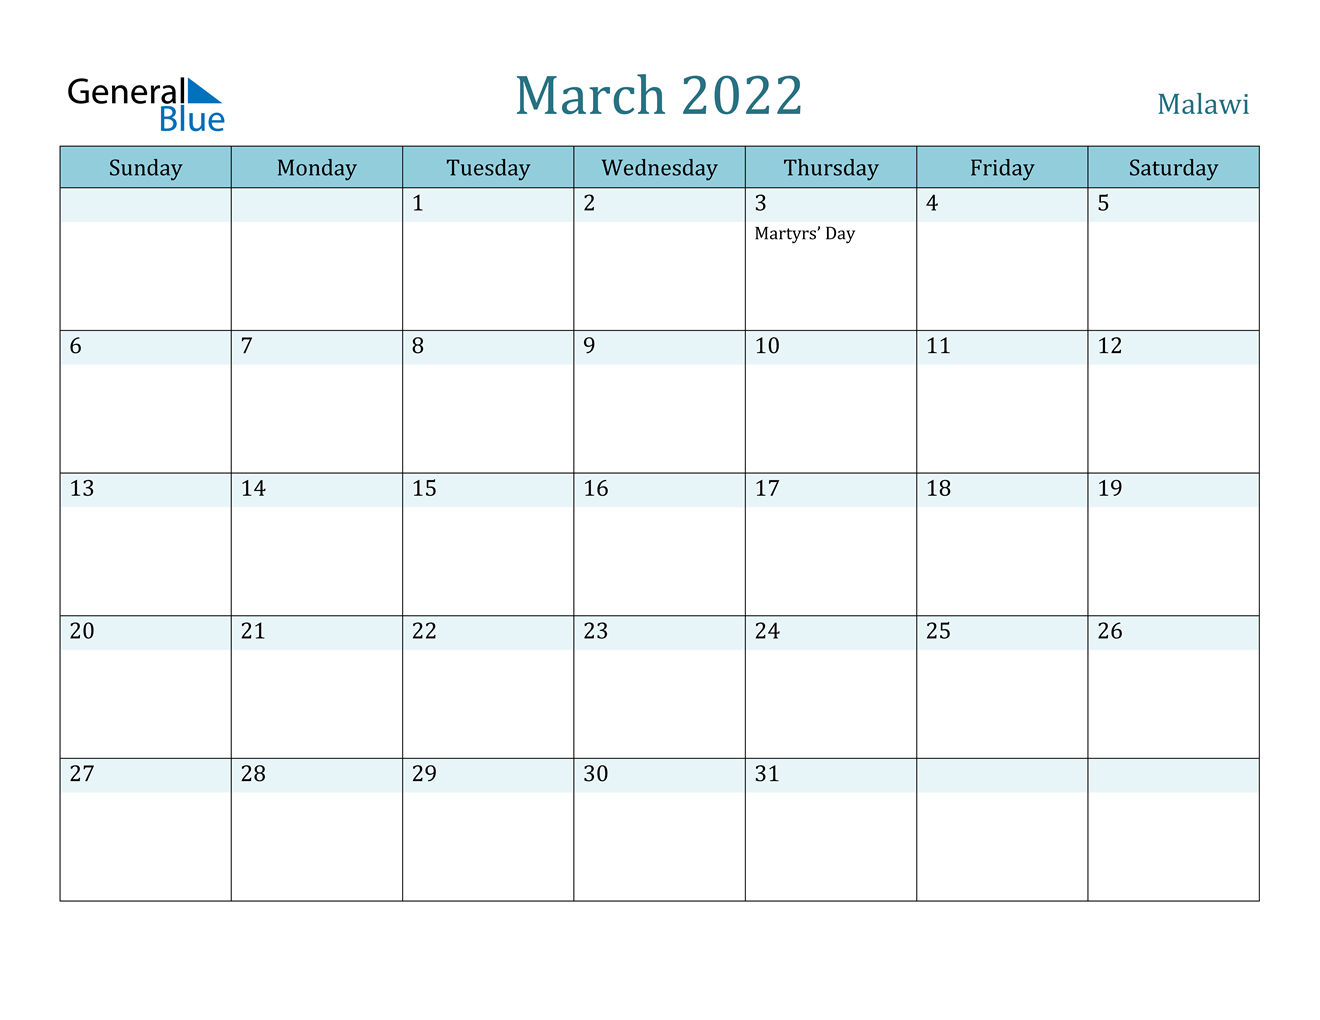 March 2022 Calendar - Malawi Regarding March And April 2022 Calendar Pages